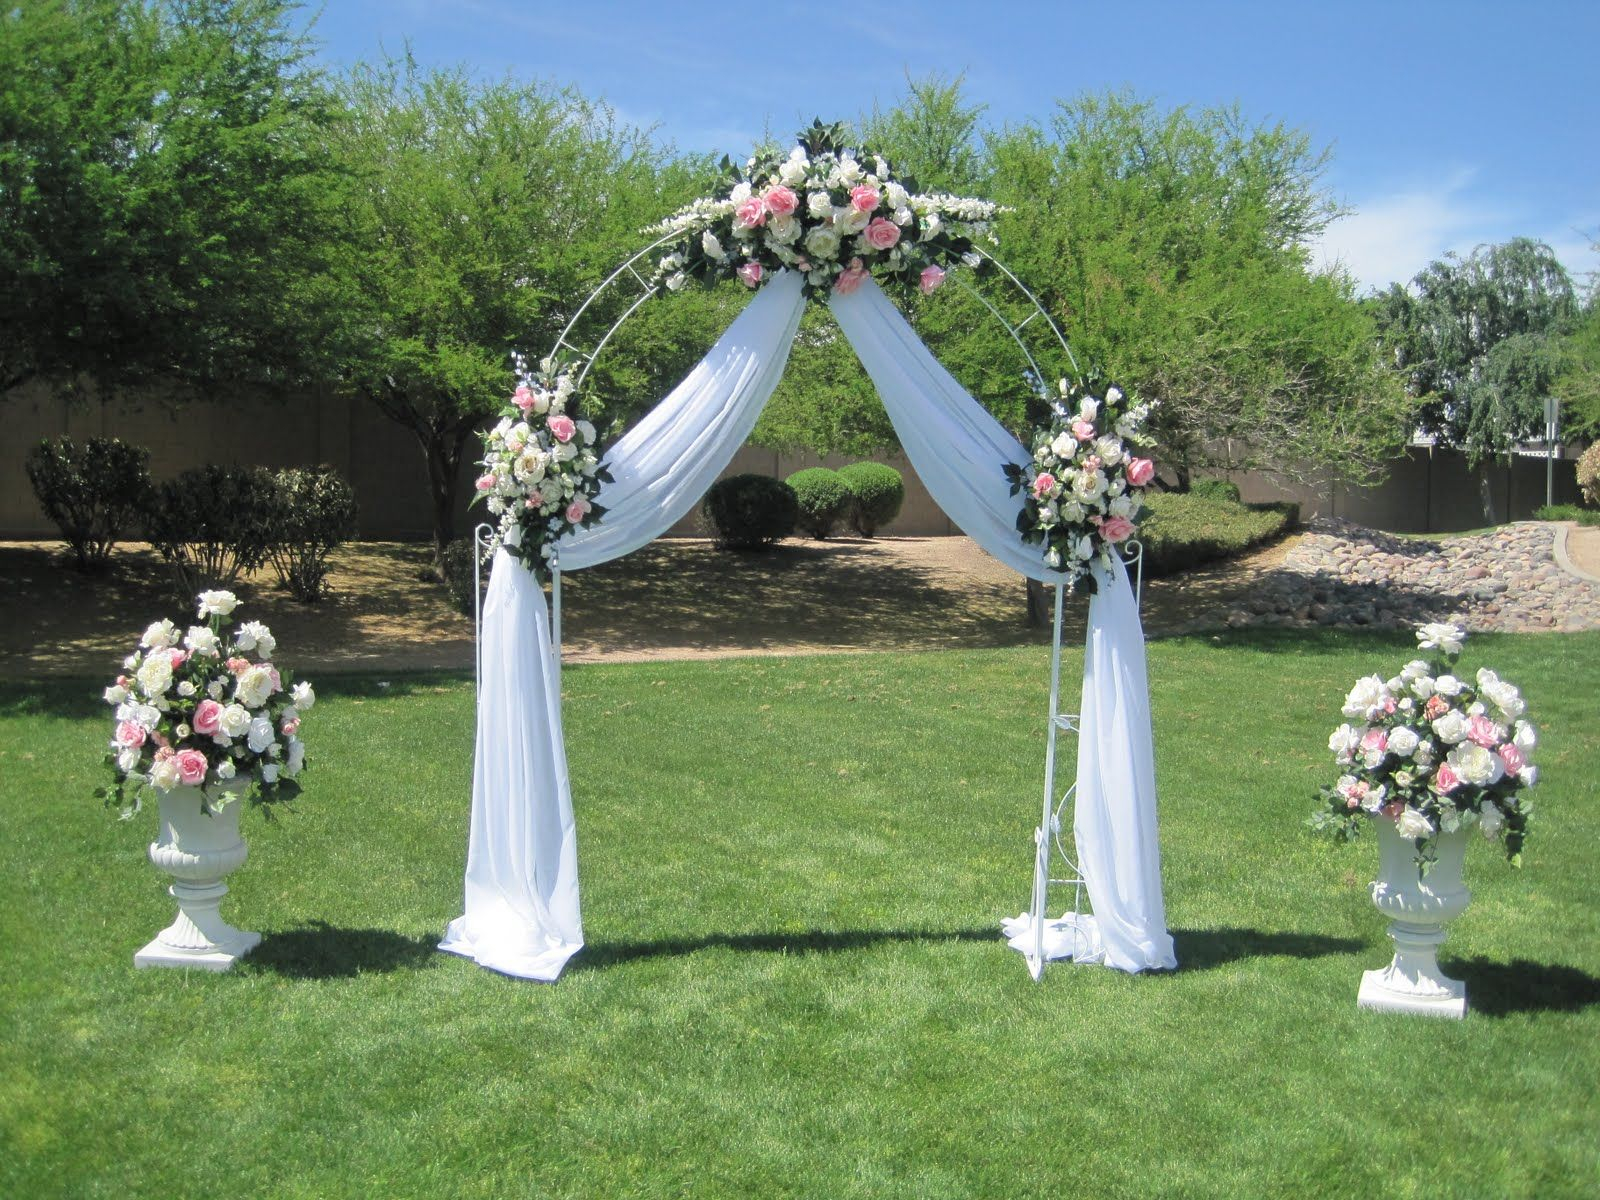 Wedding gazebo decorating ideas white wrought iron arch 3 white wedding gazebo decorating ideas white wrought iron arch 3 white floral swags voile drapery 2 junglespirit Image collections